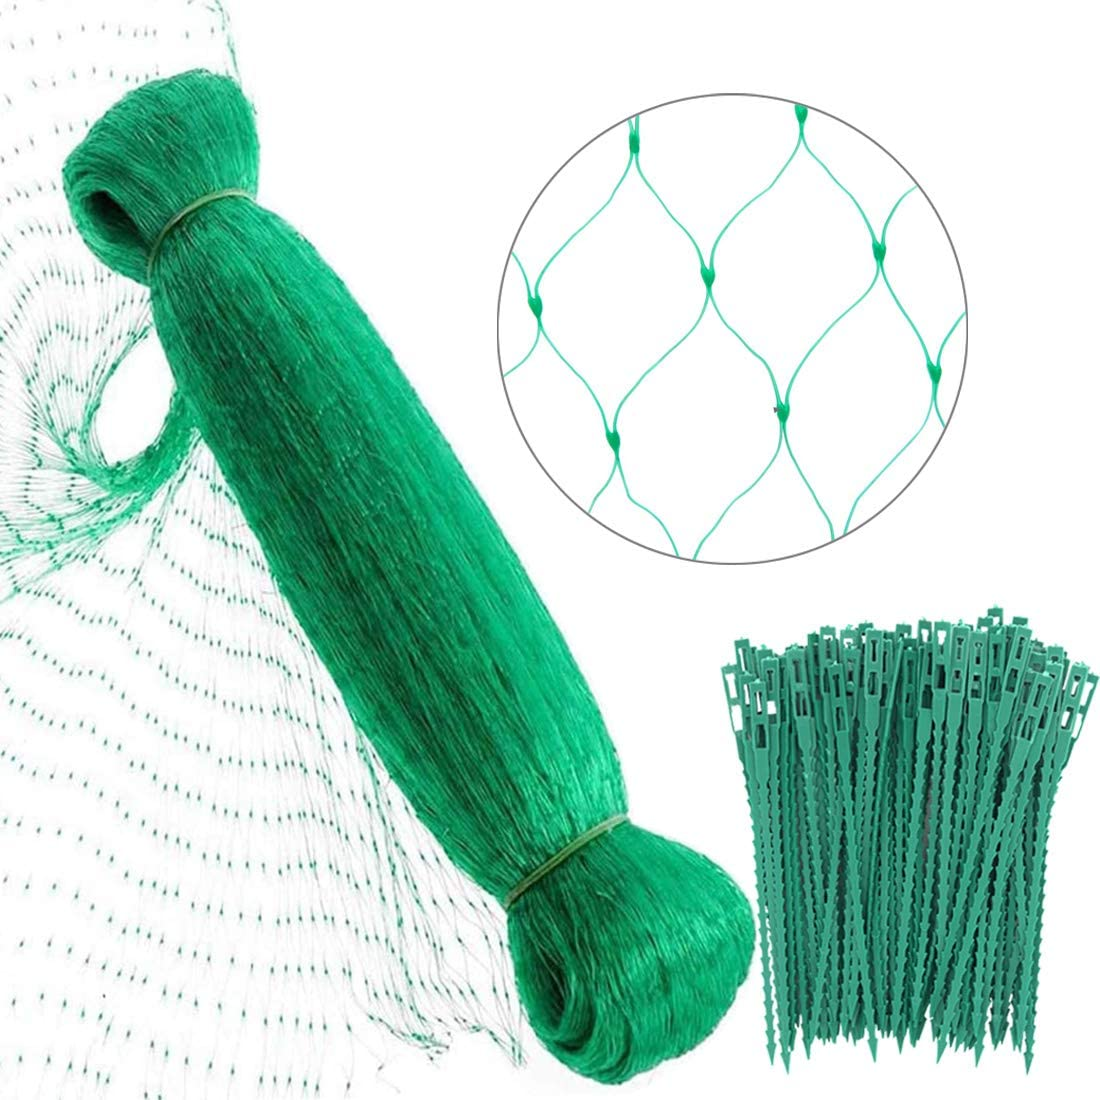 XBDZR 4 M x 10 M Anti Bird Protection Net Garden Plant Mesh Netting Fruit Trees Netting with 50 Cable Ties